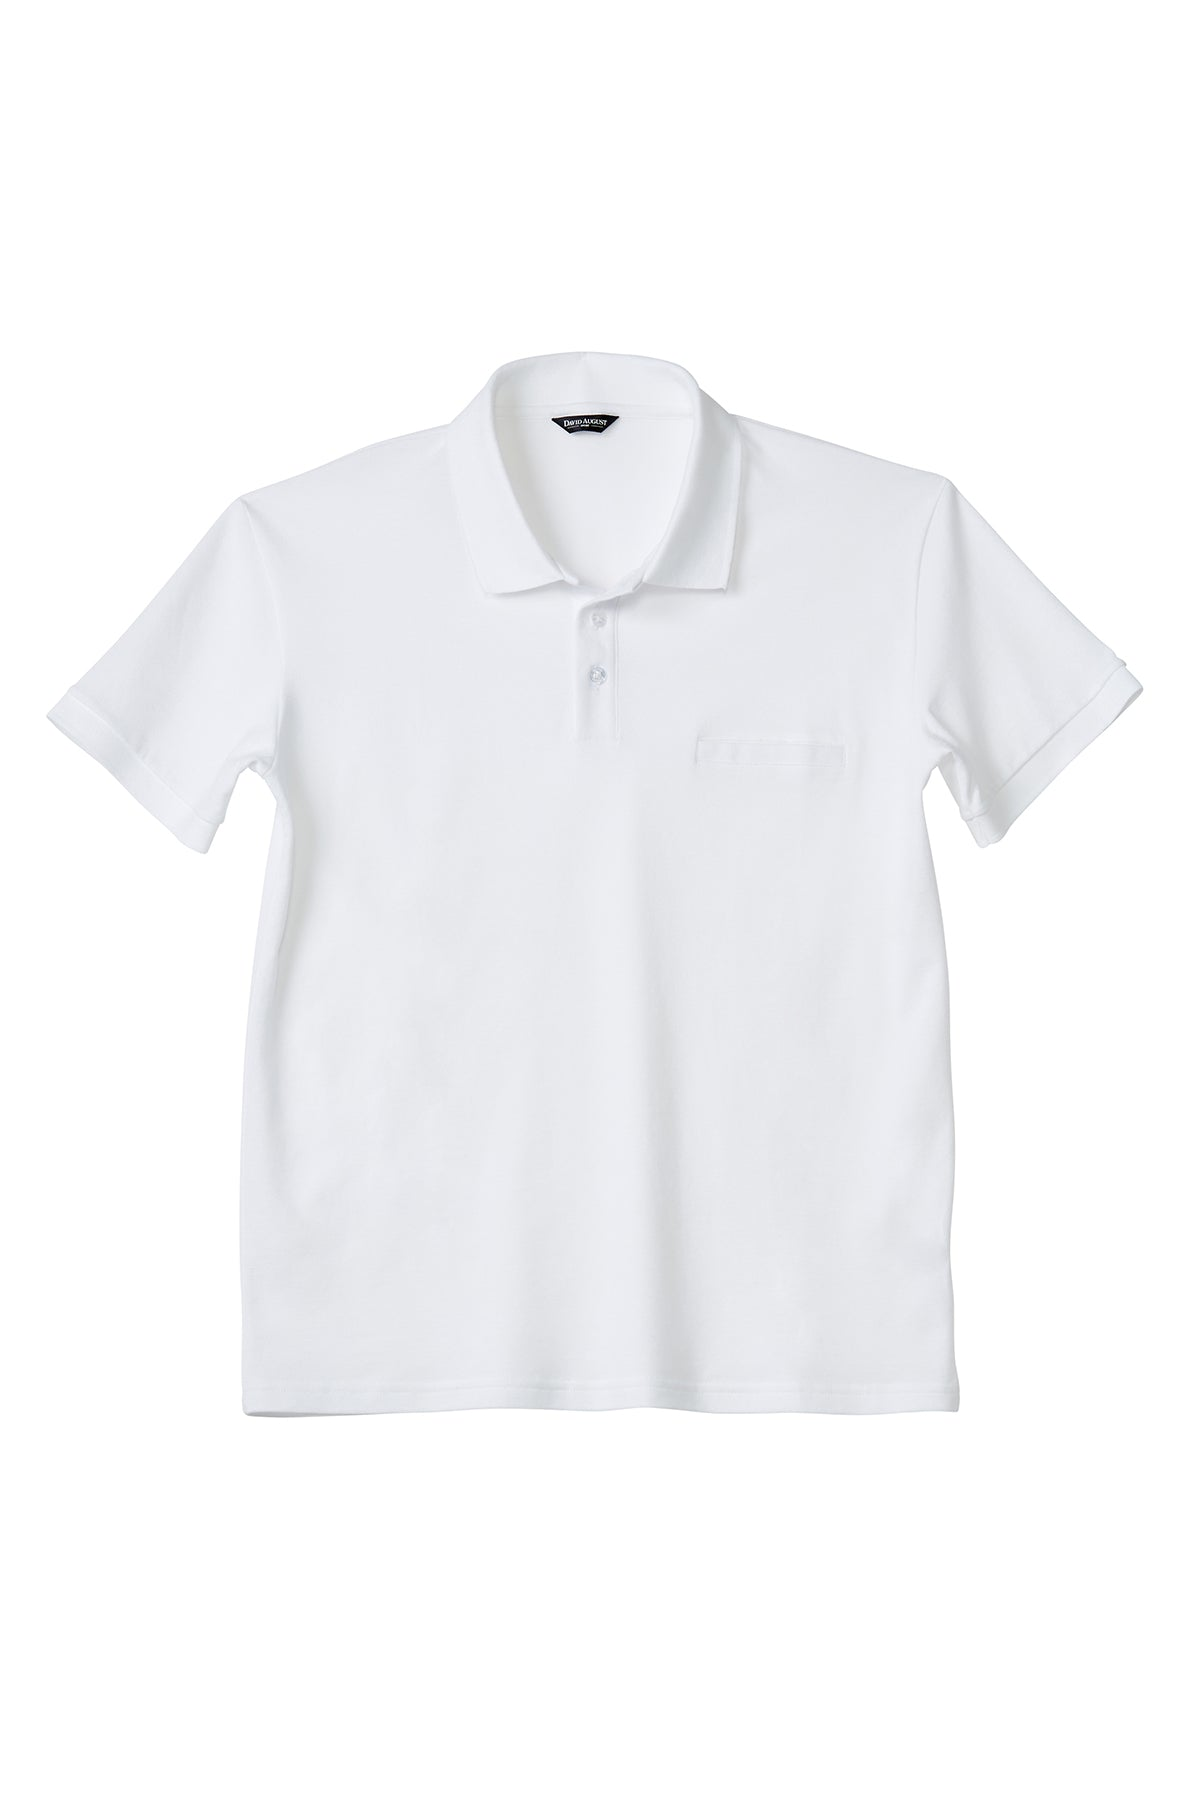 Luxury Pima Pique Cotton Polo in White